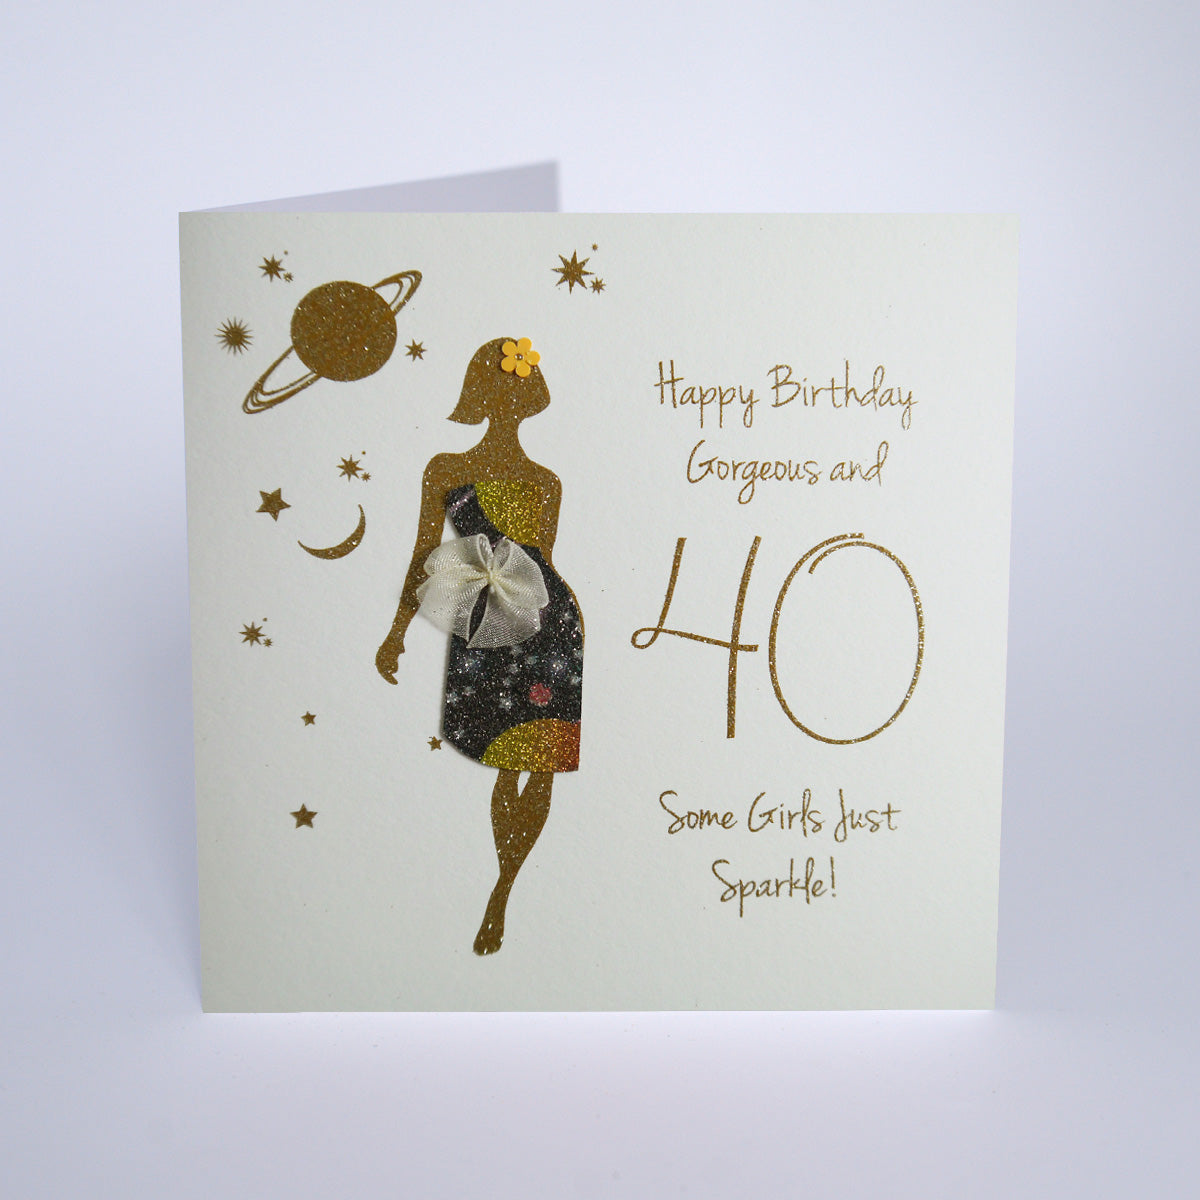 To The Birthday Girl, Gorgeous and 40 Some Girls Just Sparkle